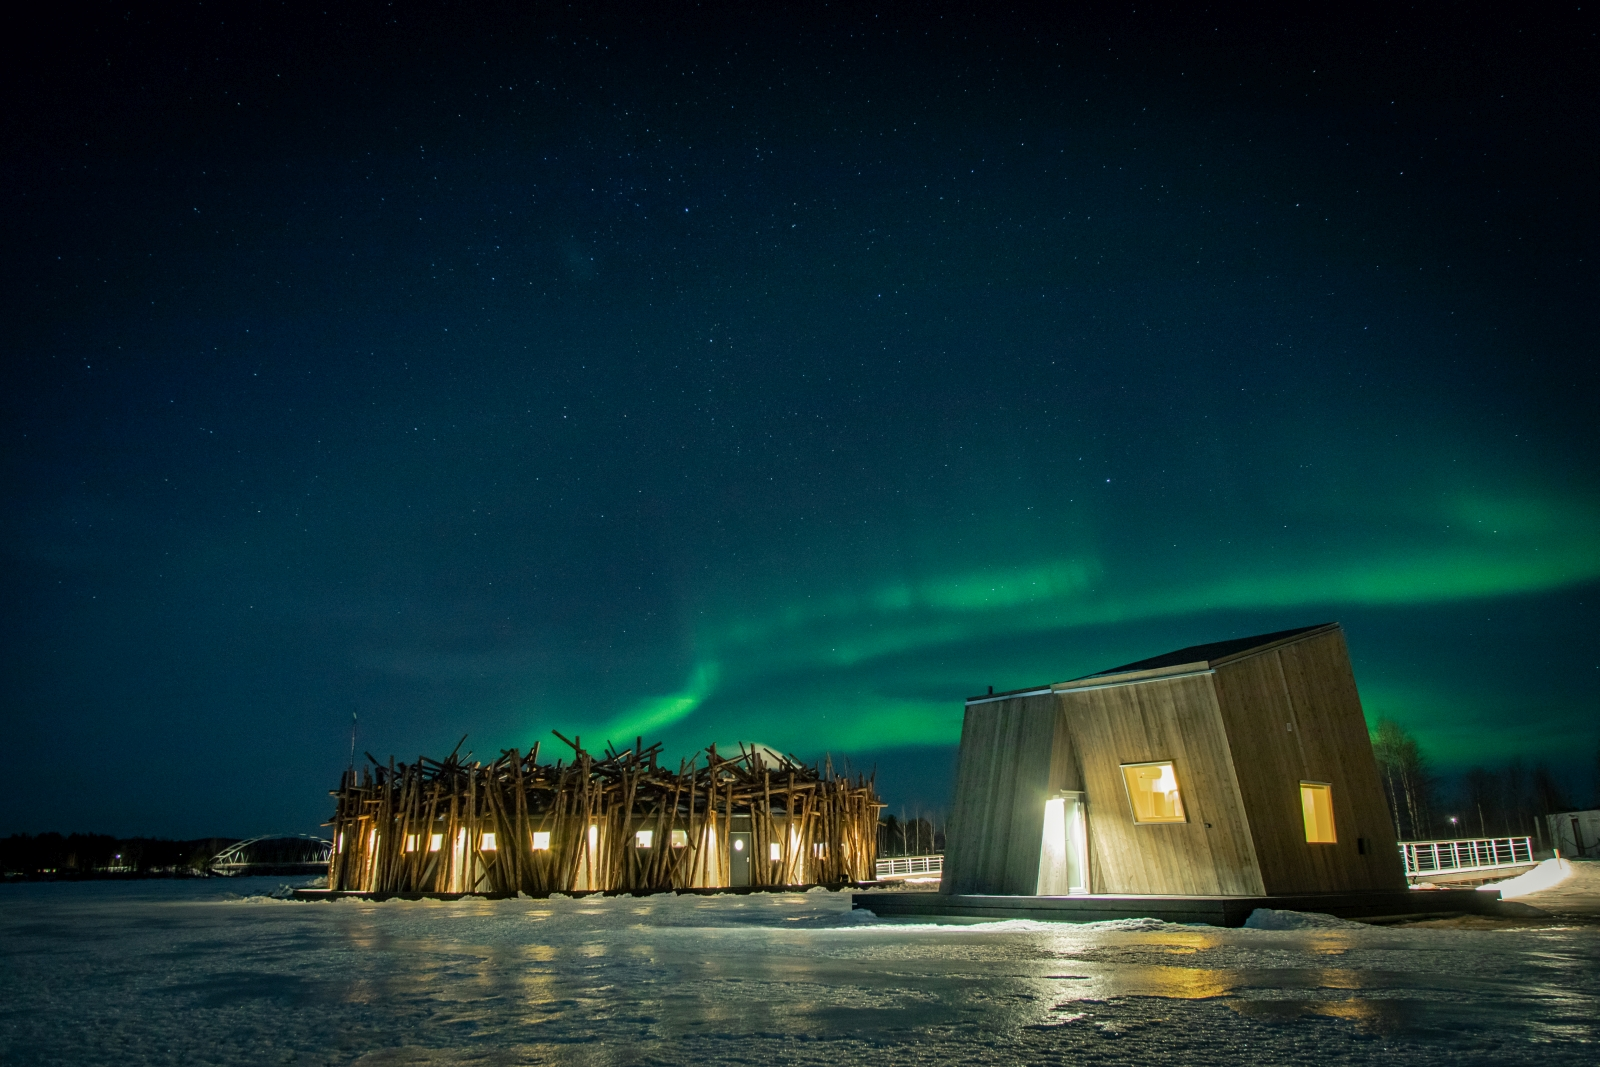 Northern lights at Arctic Baths in Sweden